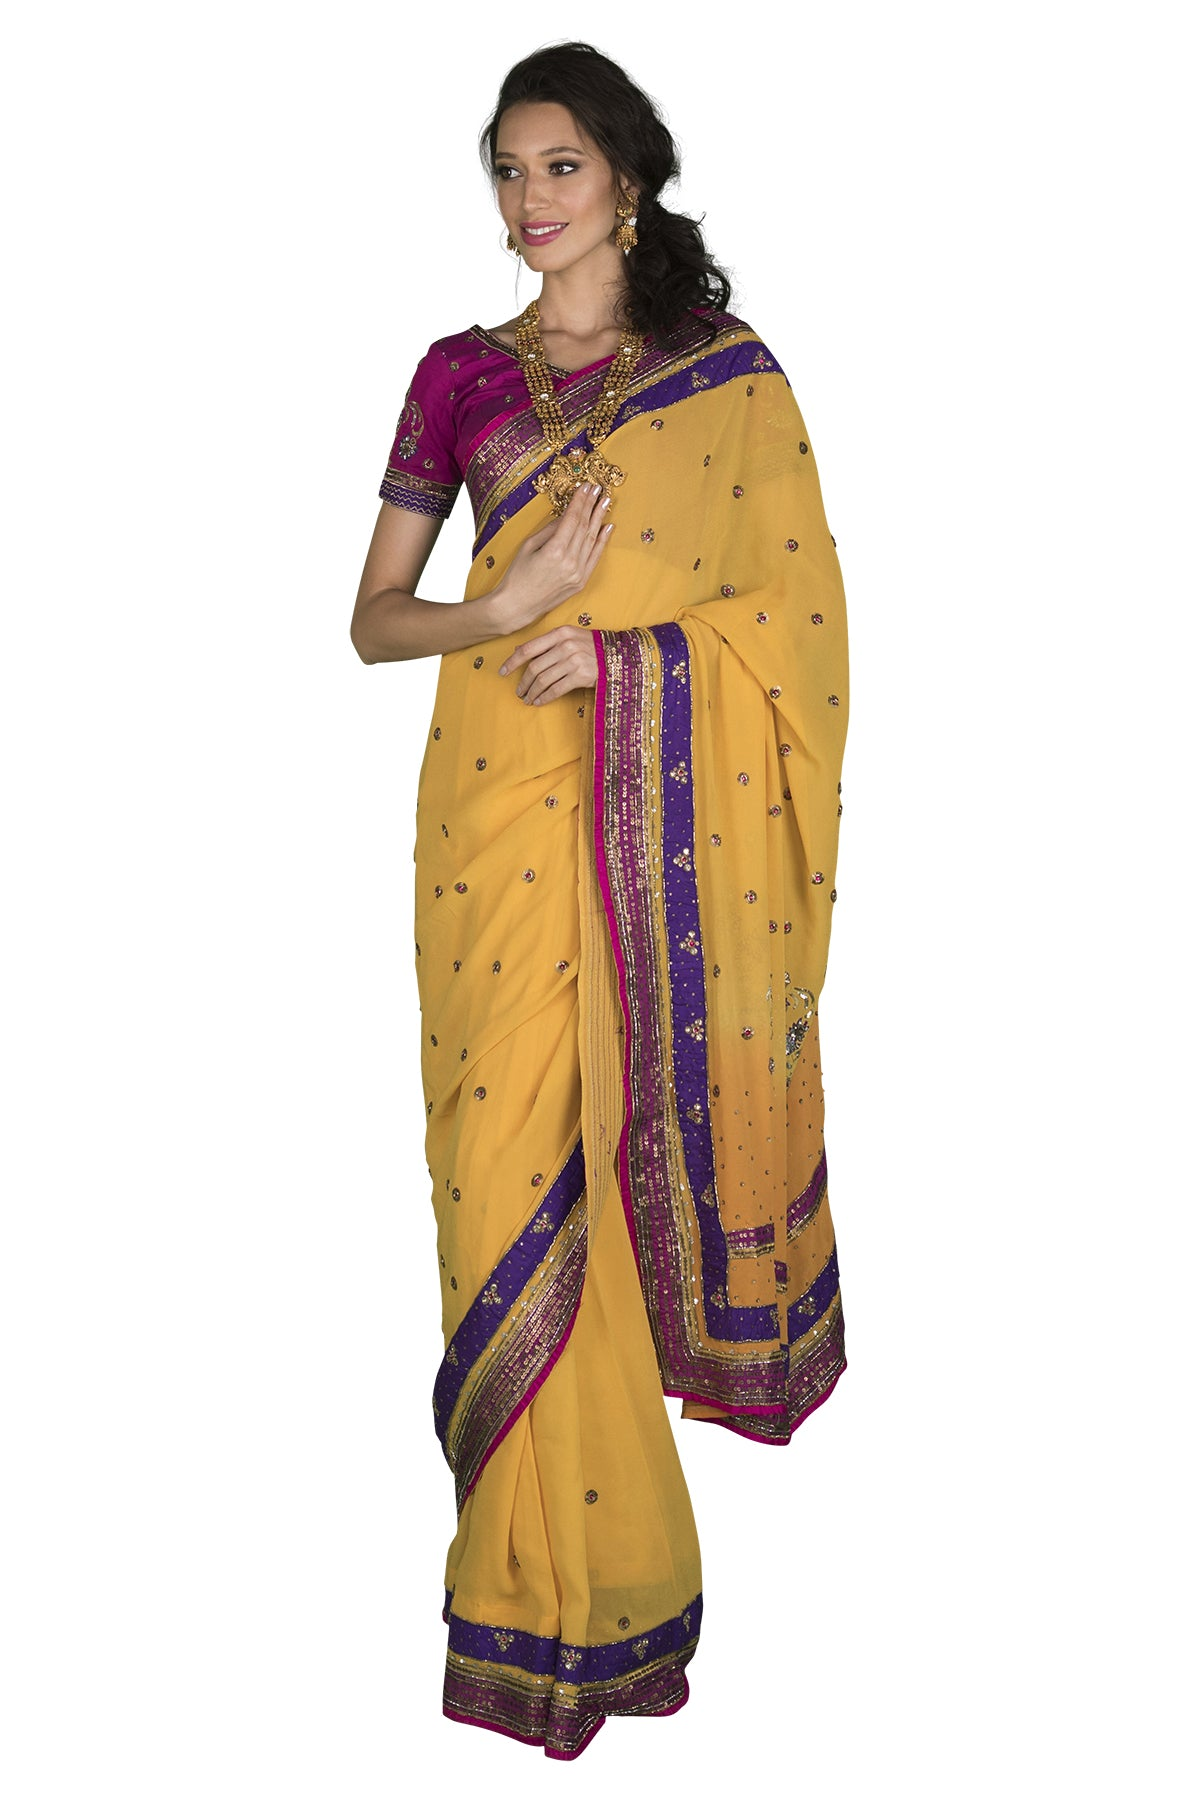 Emanate sunshine in this saffron yellow saree with pink and purple sequin borders and decorated with motifs all over. Please note that the blouse and petticoat are not included.